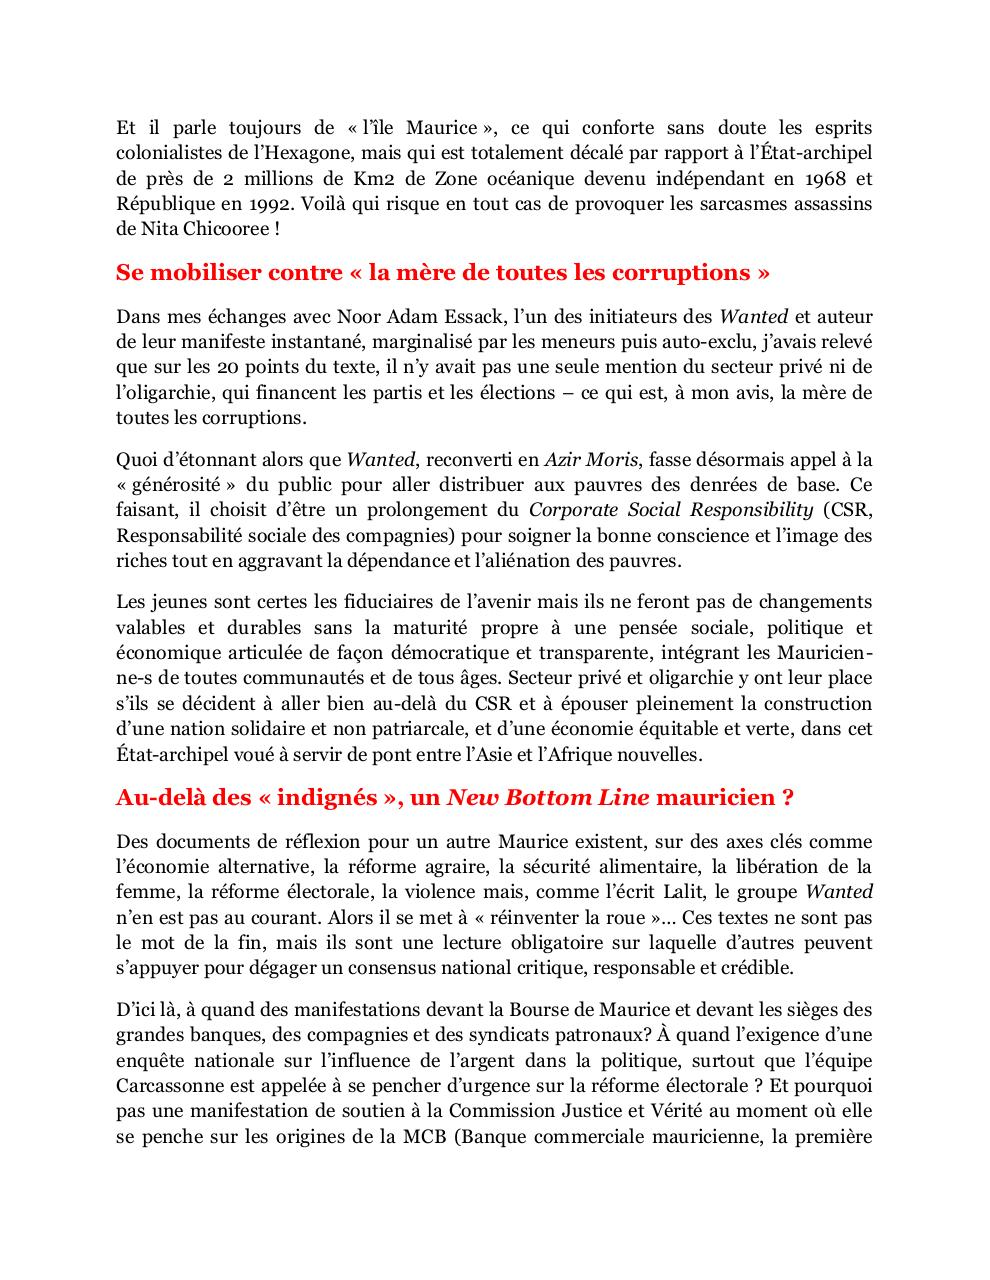 Des Wanted mauriciens au New Bottom Line etatsunien, amended MTimes-art-23092011.pdf - page 3/4